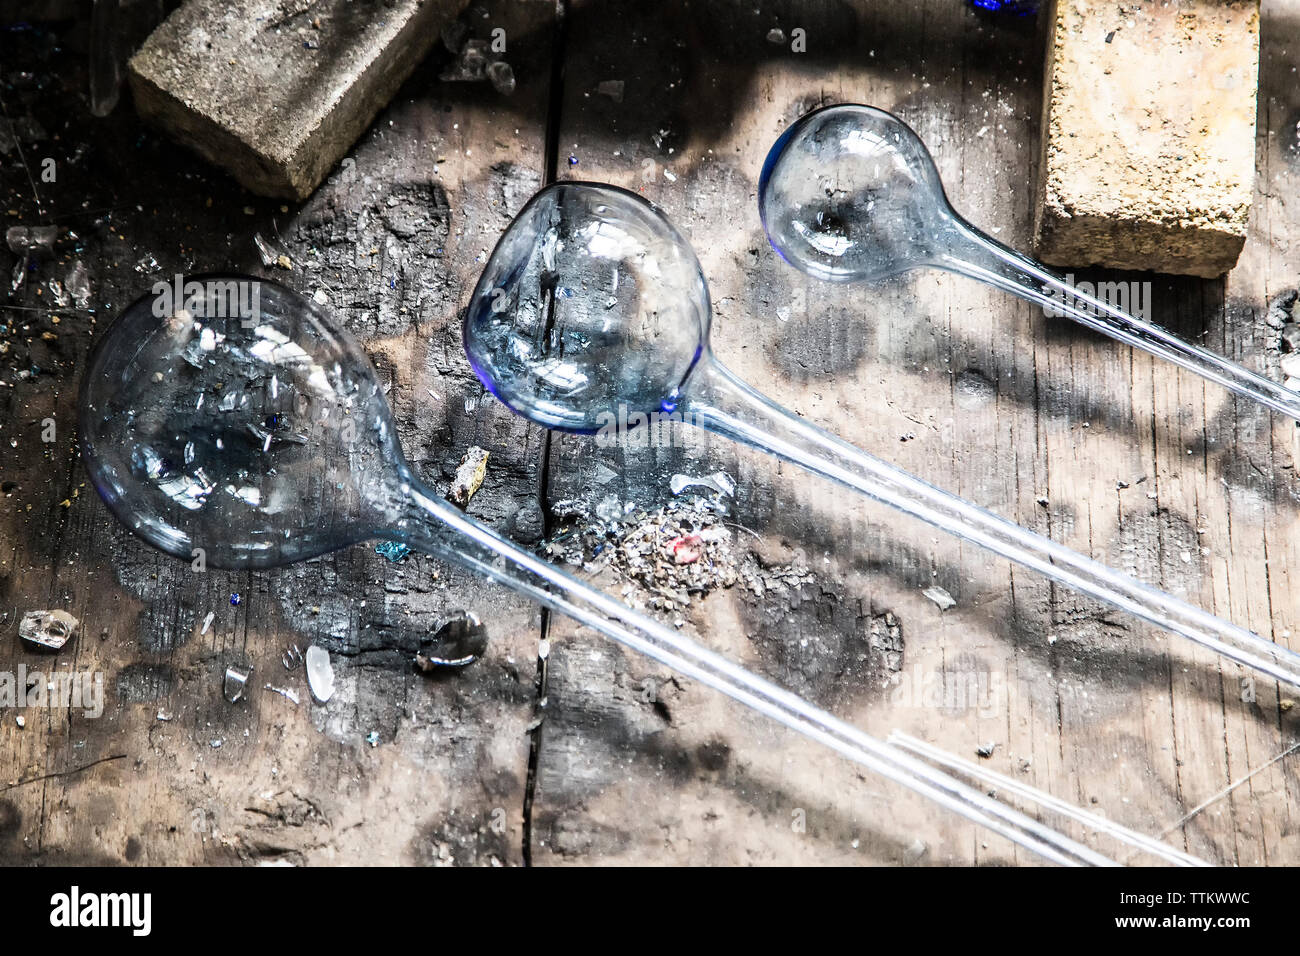 Overhead view of manufactured glasses on work bench at factory Stock Photo